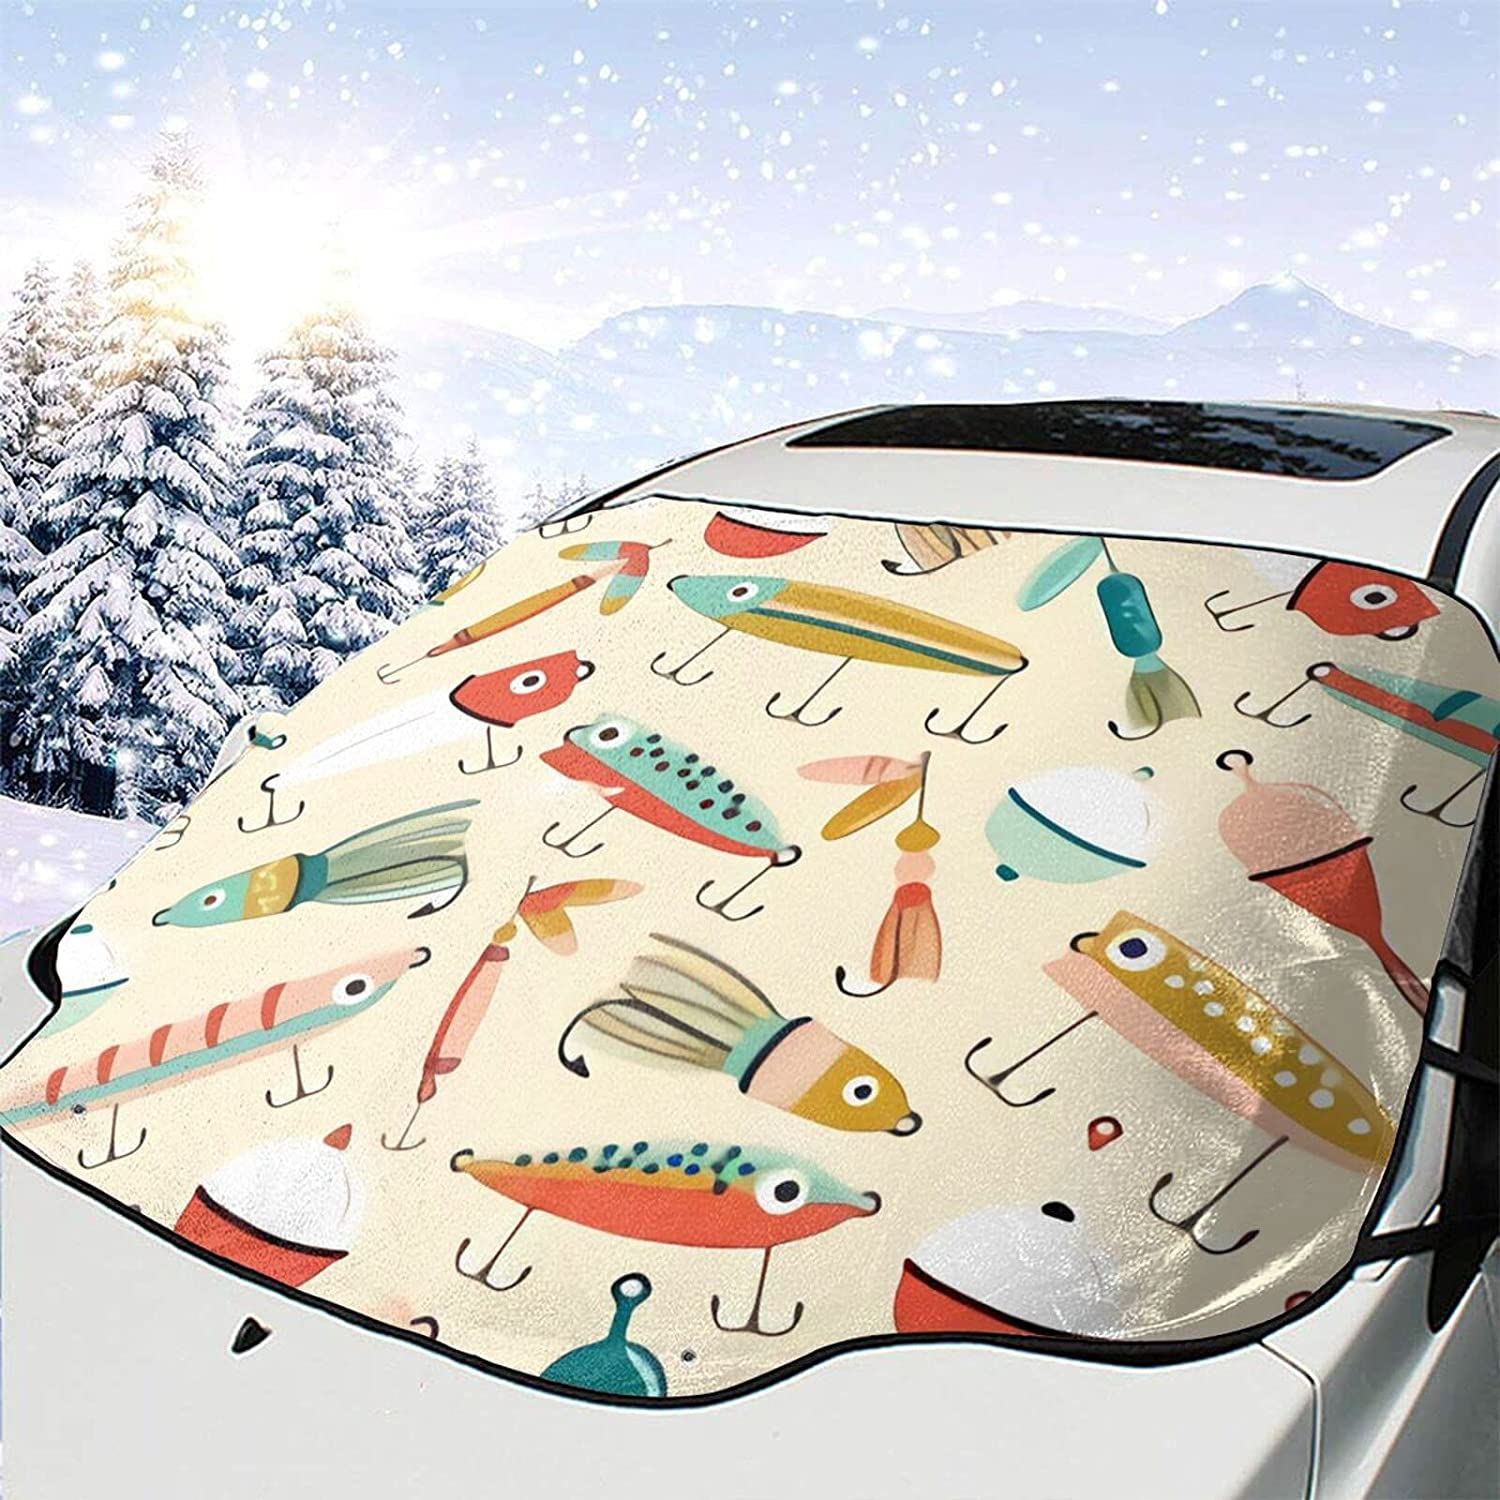 Al Max 65% OFF sold out. Car Front Windshield Cover Fishing Windshie Lures Automotive Art